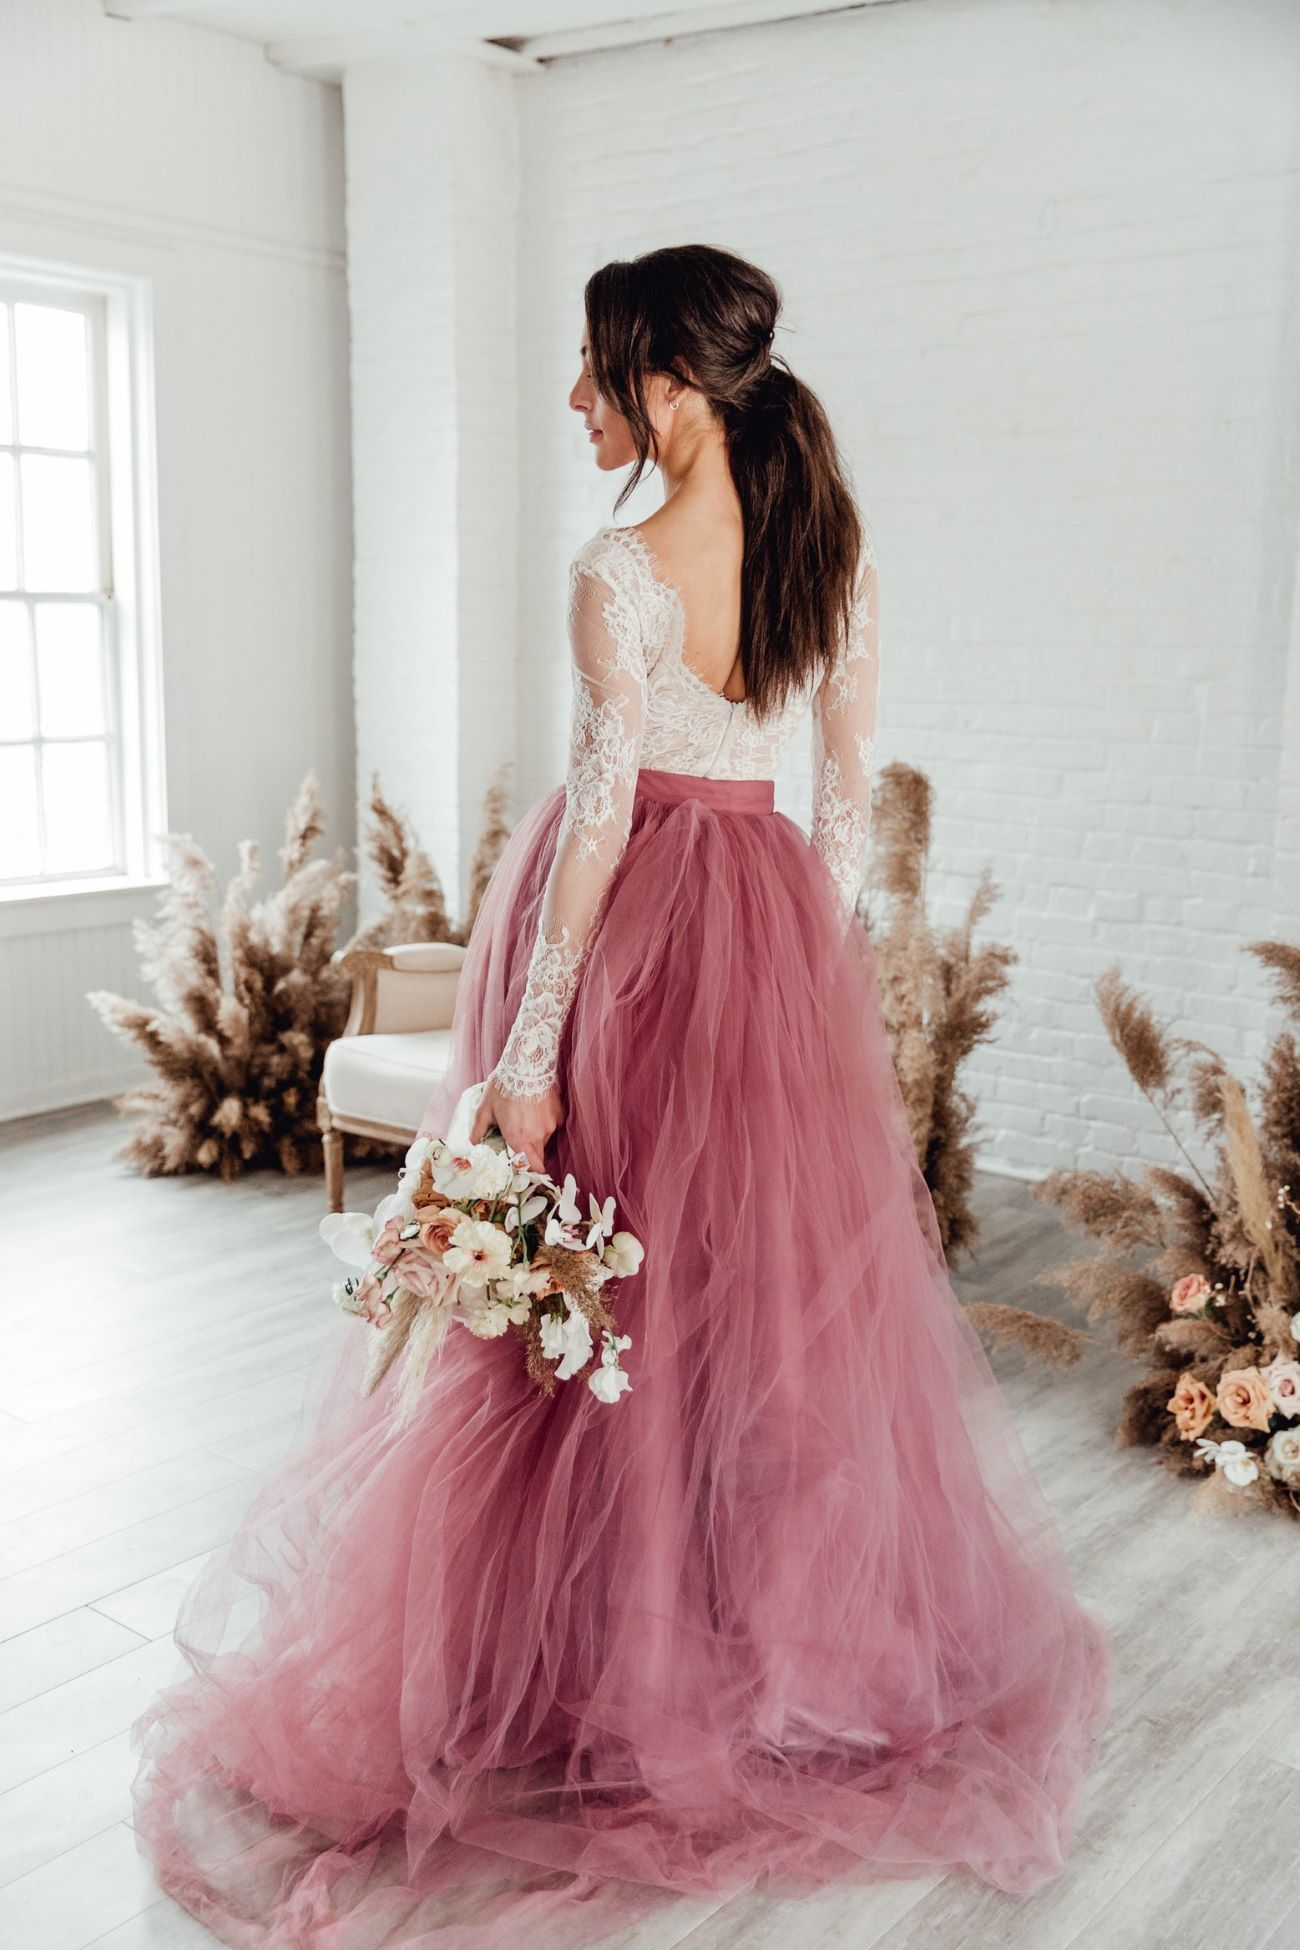 Pretty In Pink Our Favorite Blush Wedding Dresses Green Wedding Shoes In 2020 Green Wedding Dresses Wedding Dresses Blush Blush Pink Wedding Dress